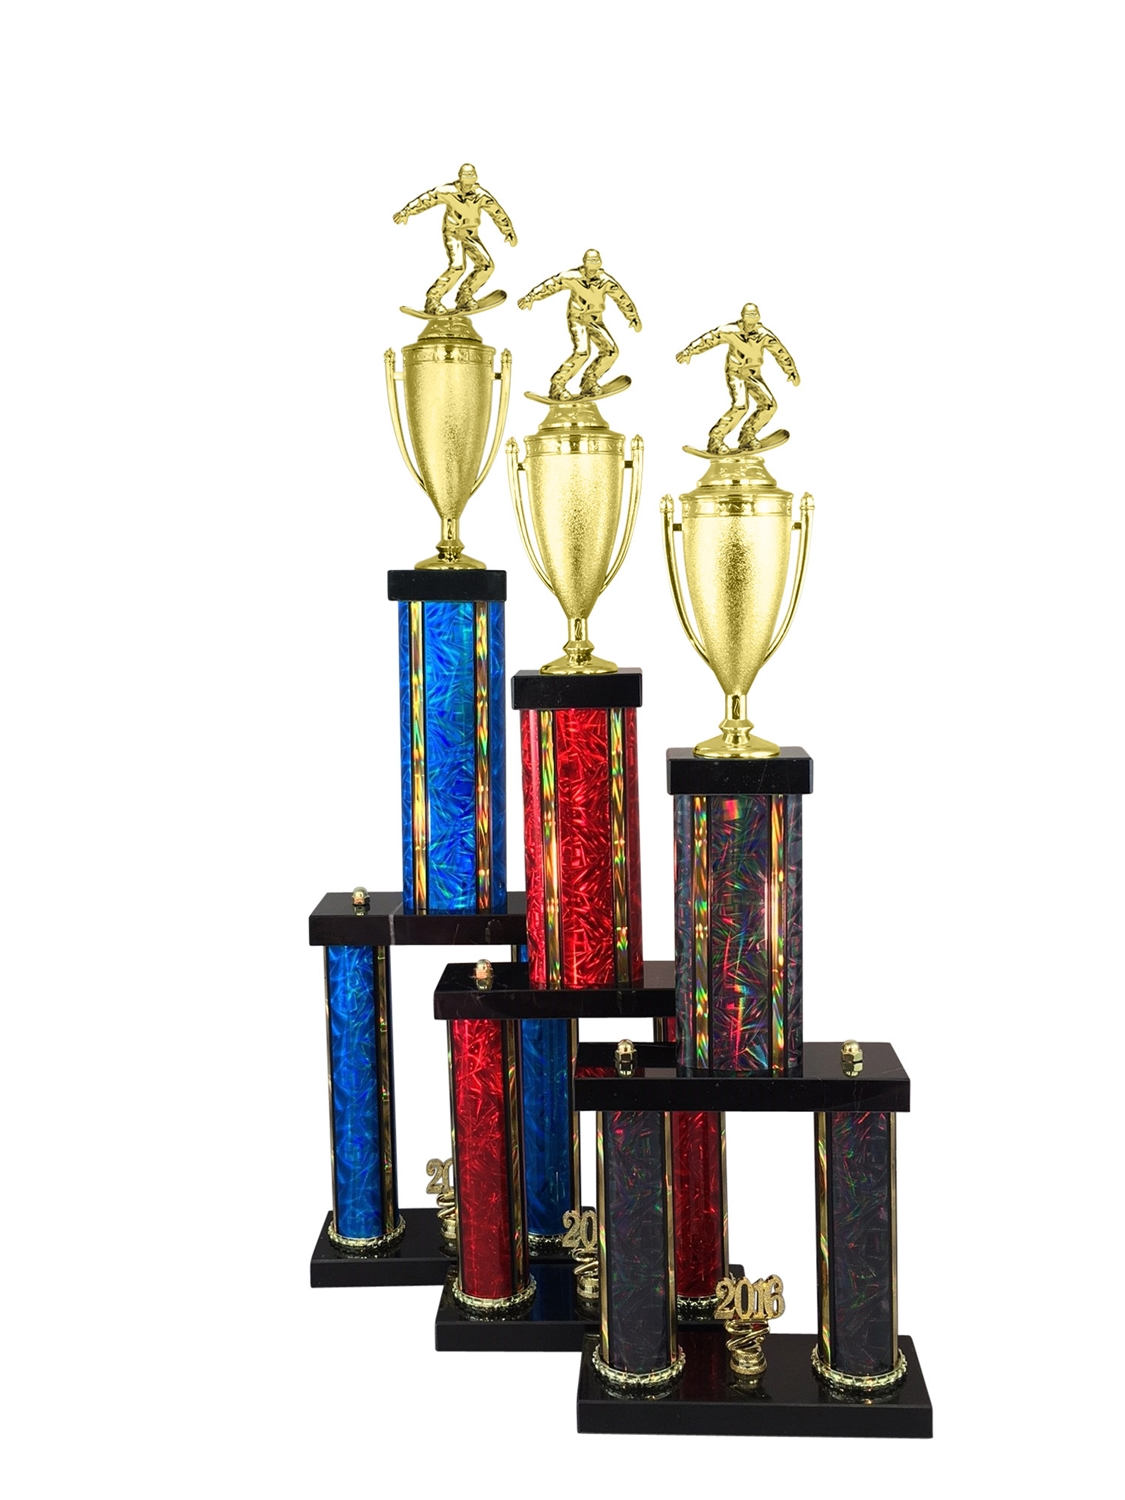 2 Column Snow Boarding Trophy in 11 Color & 6 Size Options